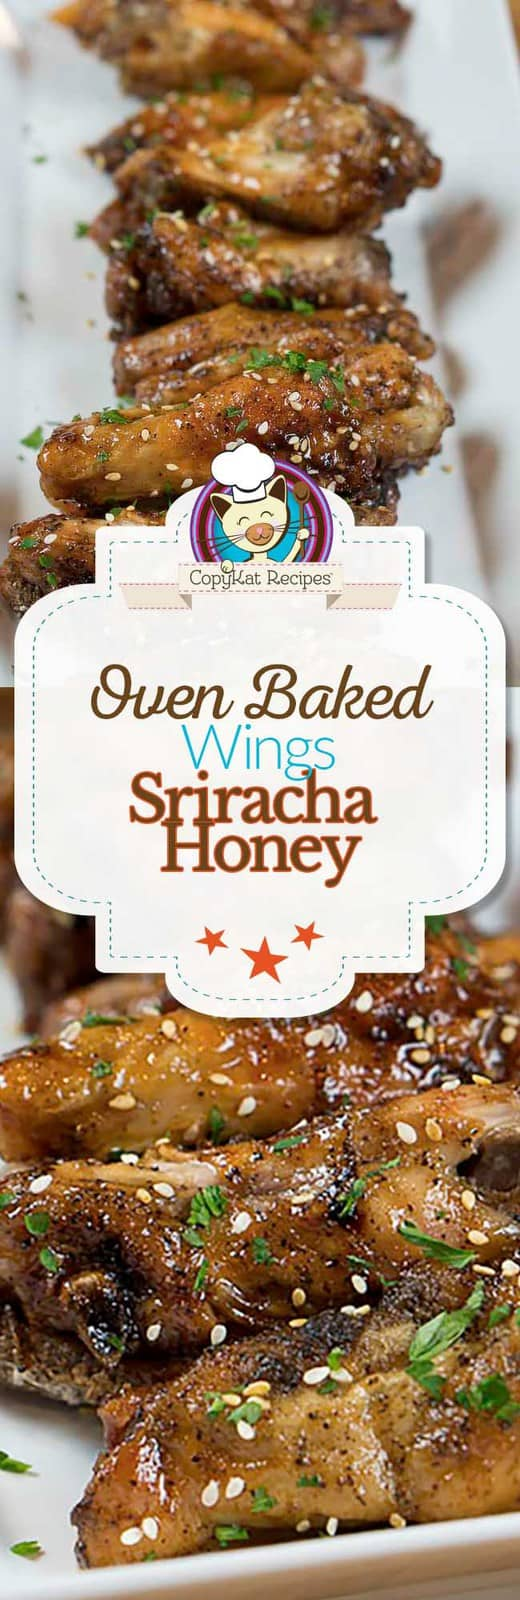 You can make super crispy Sriracha honey wings in the oven.   You won't guess what the secret ingredient is.